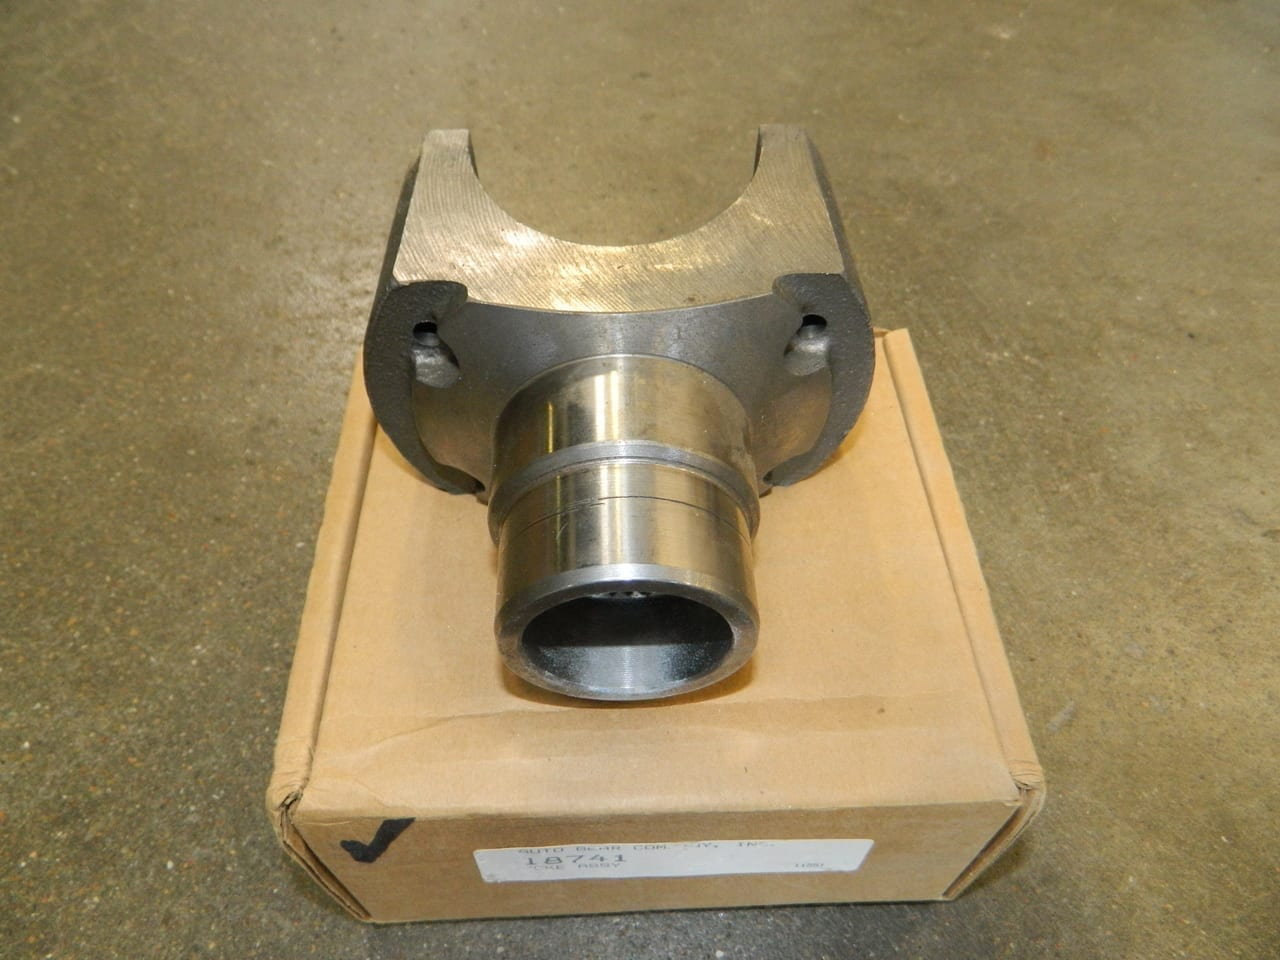 NV4500 GMC Chevy 2wd Mainshaft Yoke 1350 Series U-Joint